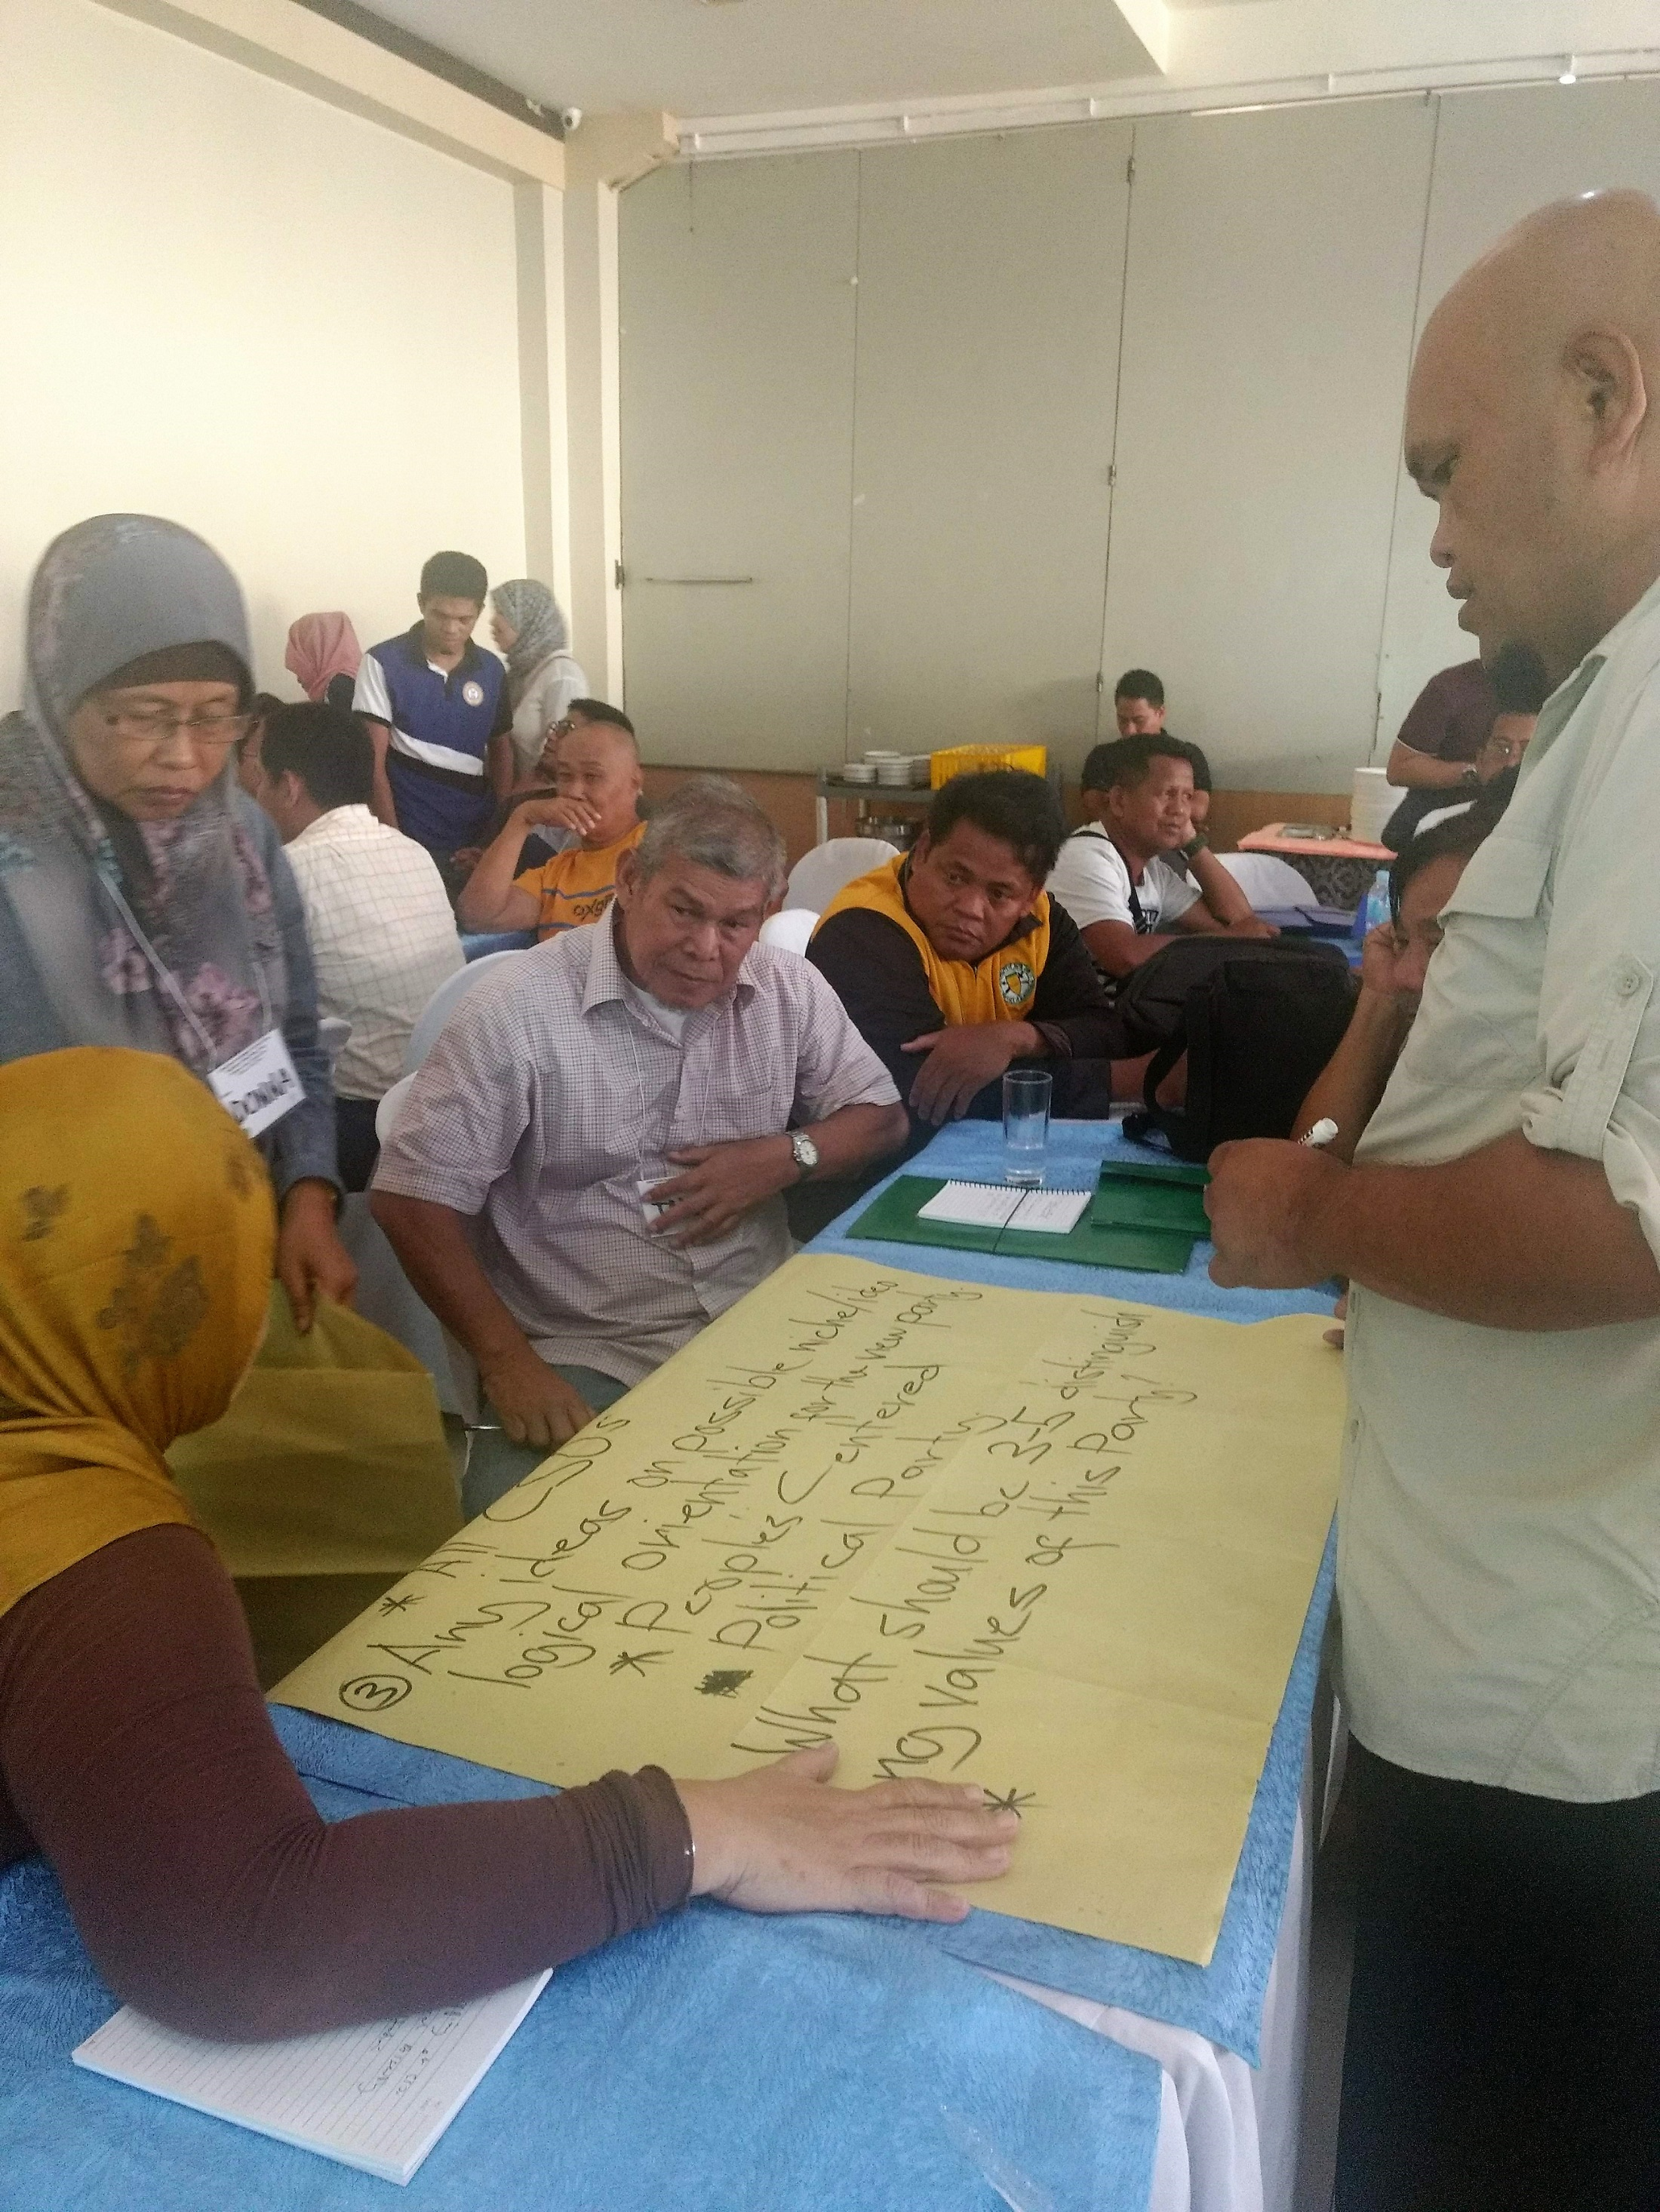 International IDEA and the Consortium of Bangsamoro Civil Society facilitated a workshop on strategic planning for political parties for various civil society groups in Bangsamoro in support of the BARMM transition in October 2019. The participants brainstormed on an action plan for establishing regional political parties in Bangsamoro.  Photo credit: International IDEA